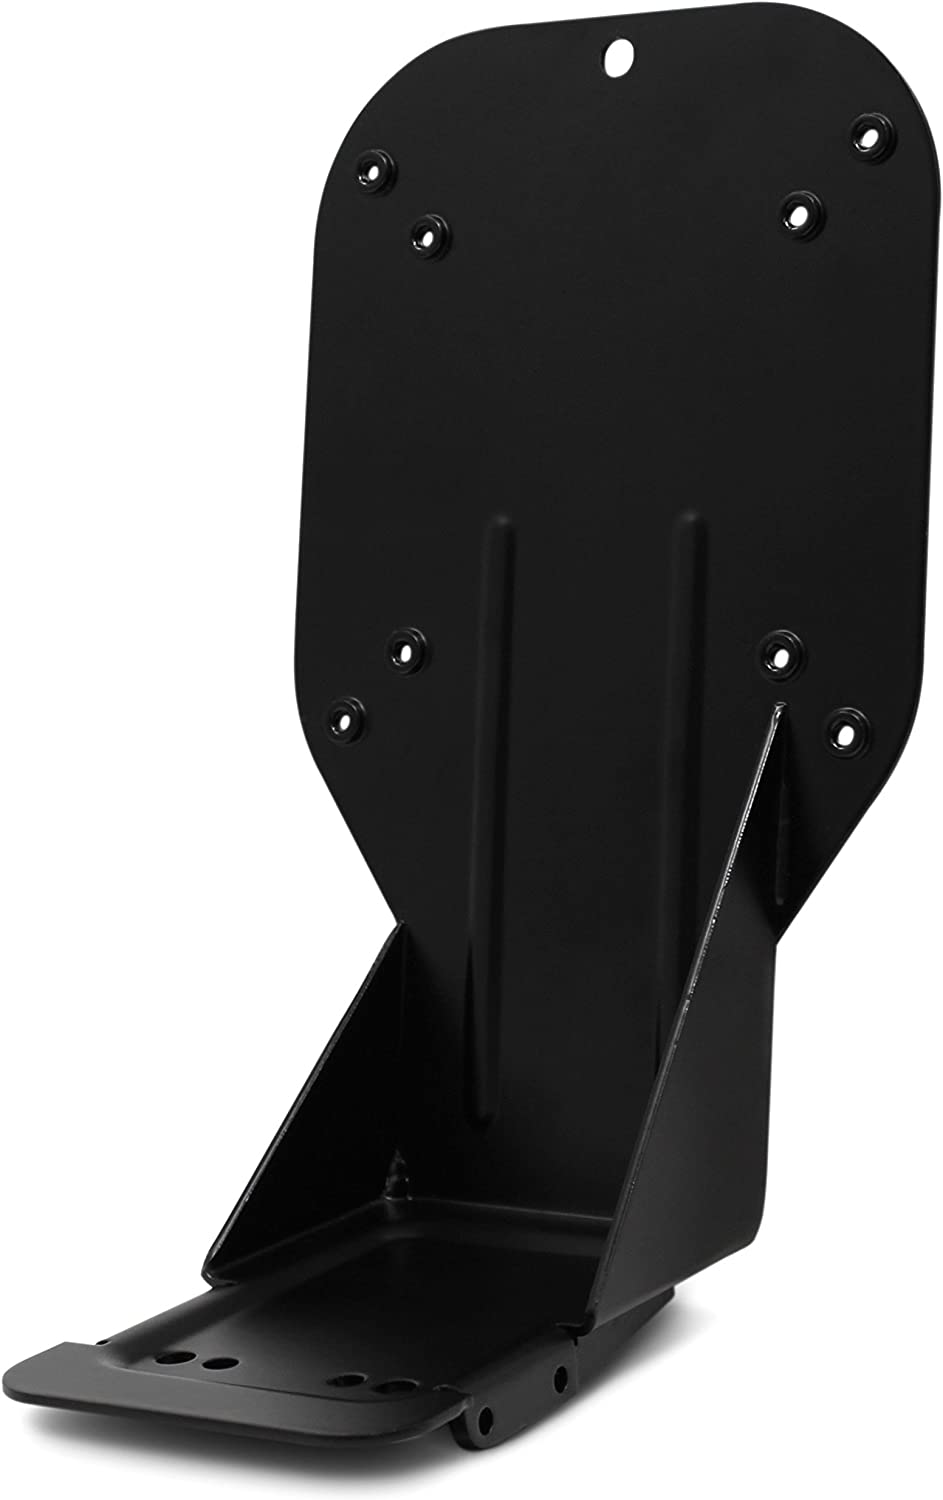 VESA Mount Adapter for HP All-in-One Computers | Fits 20, 22, and 24 Series with Star-Shaped Base | Does Not Fit Pavilion Series - by HumanCentric